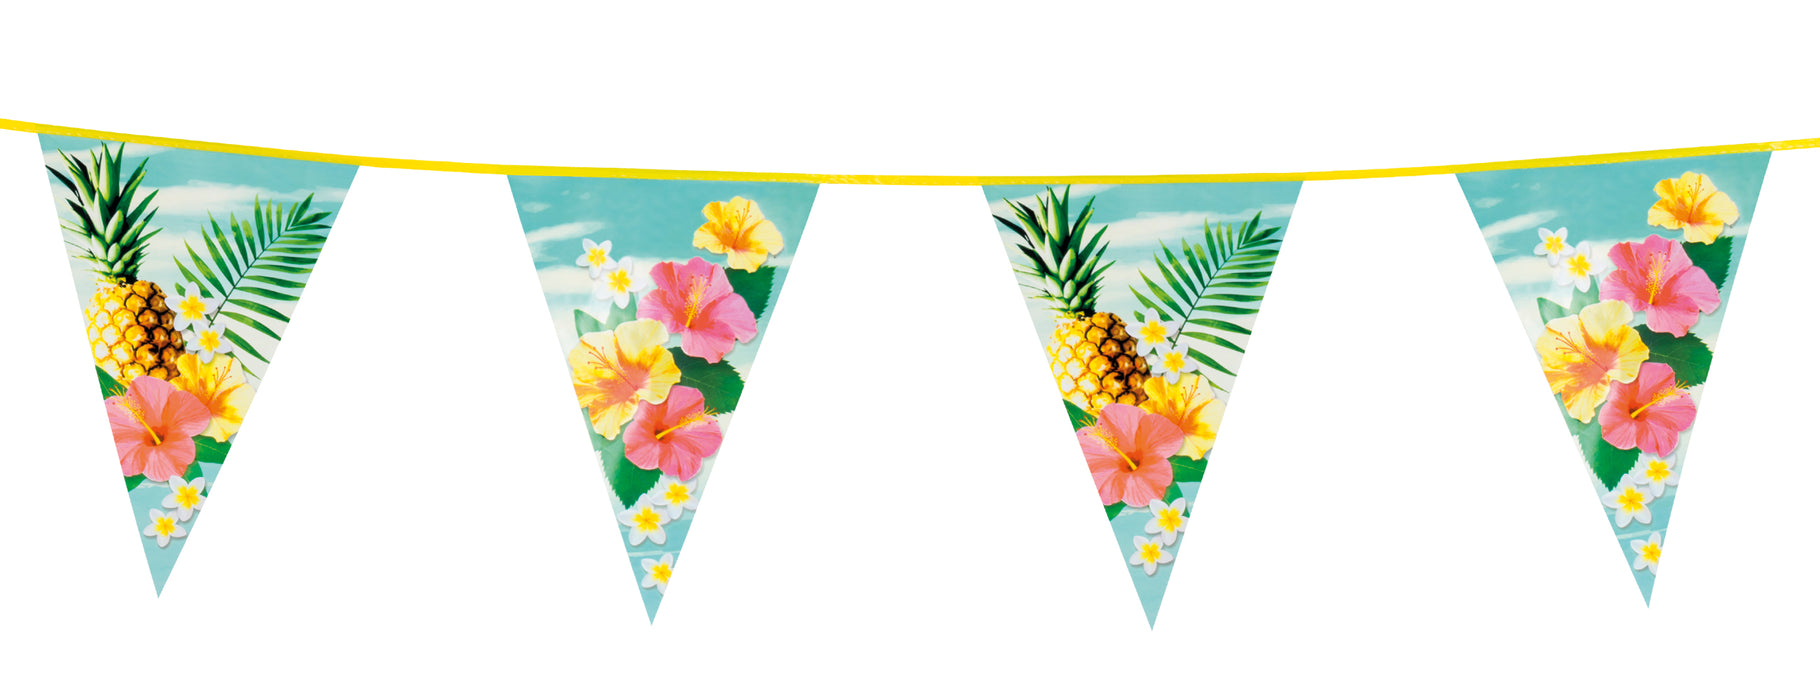 Boland Tropical Party Bunting Hawaiian Luau Paradise Themed Decoration 6m